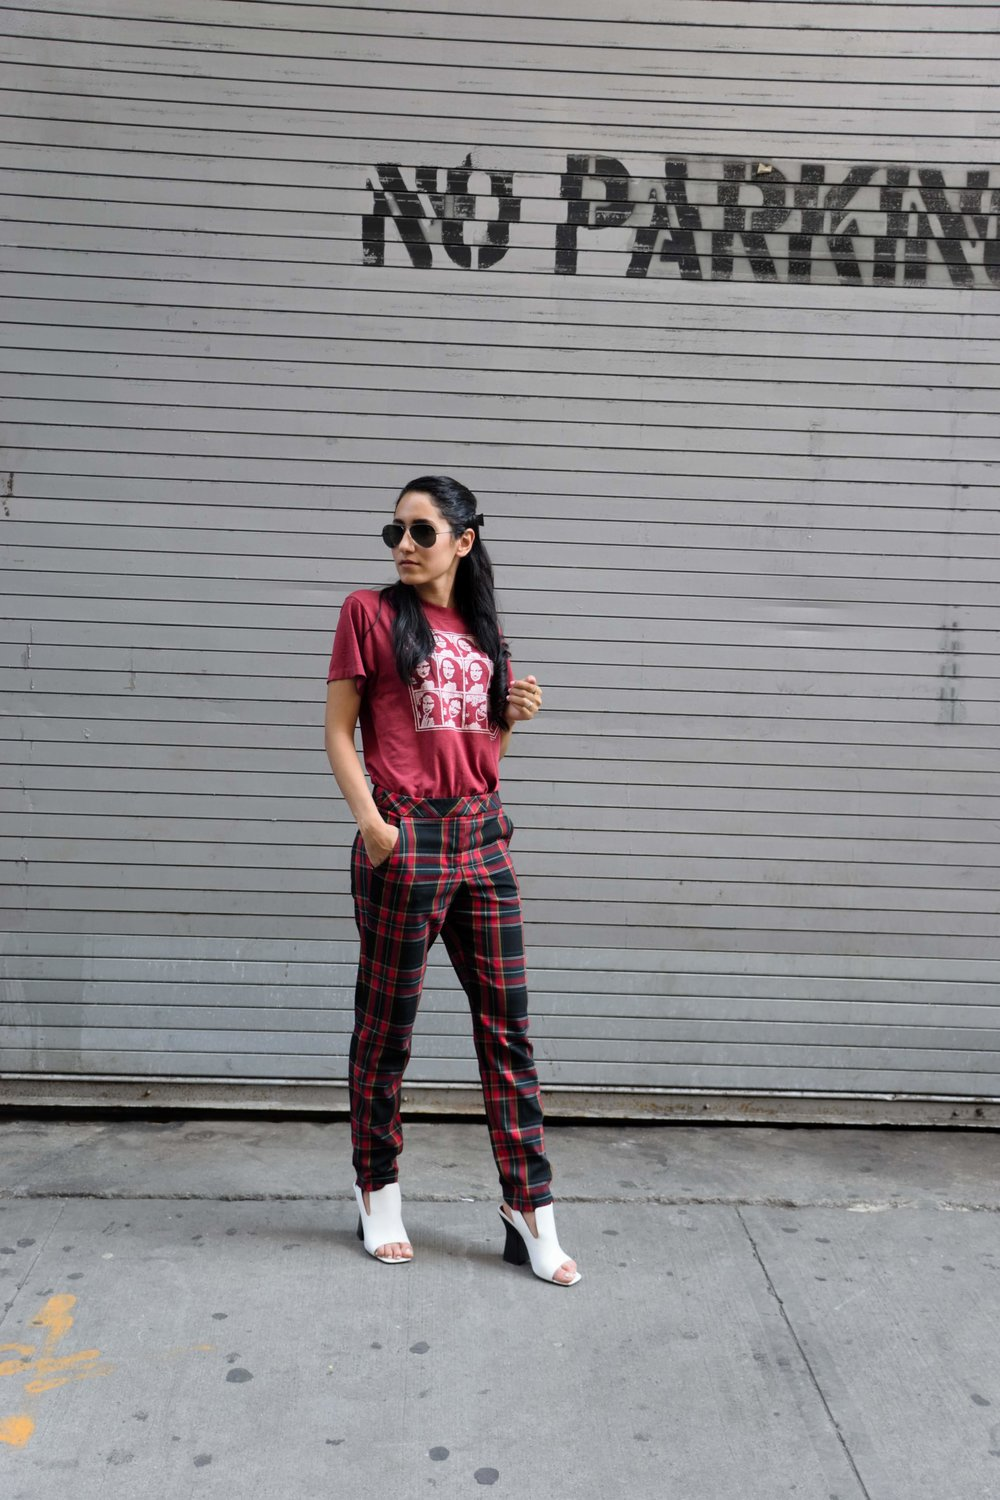 Wearing:  Vintage Mona Lisa (similar)  shirt  | Trina Turk (similar)  pants  | Celine shoes